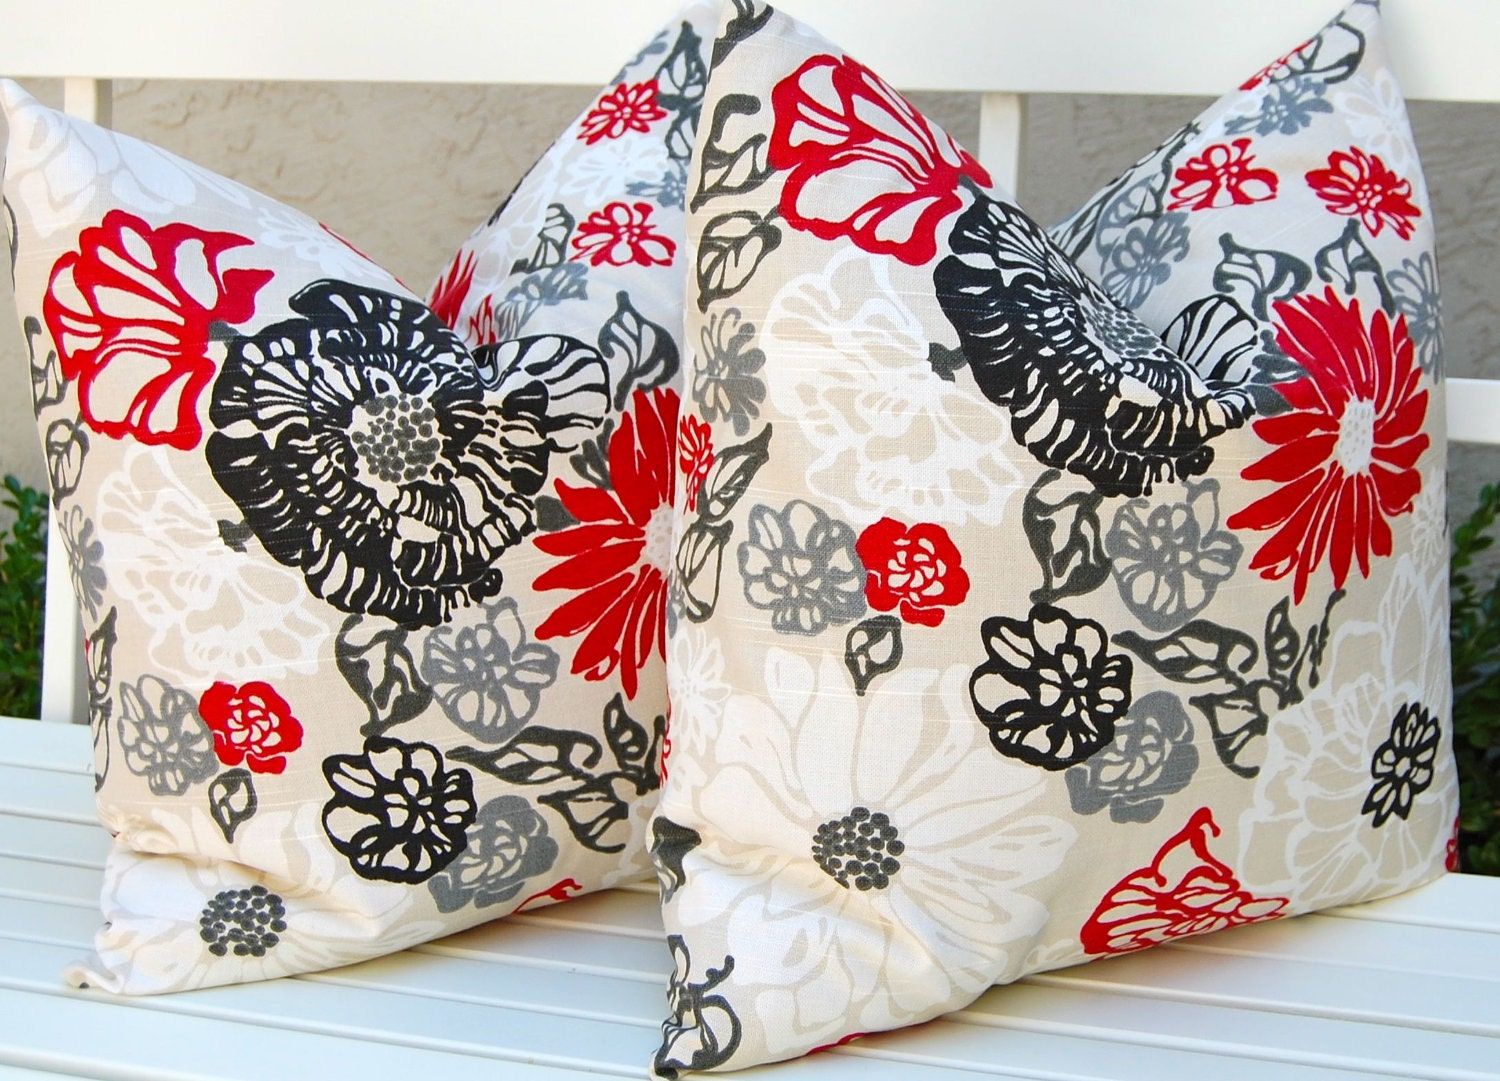 Red Black White Decorative Pillows : Decorative Pillows Invigorate Pillow Covers 20 x 20 Inches